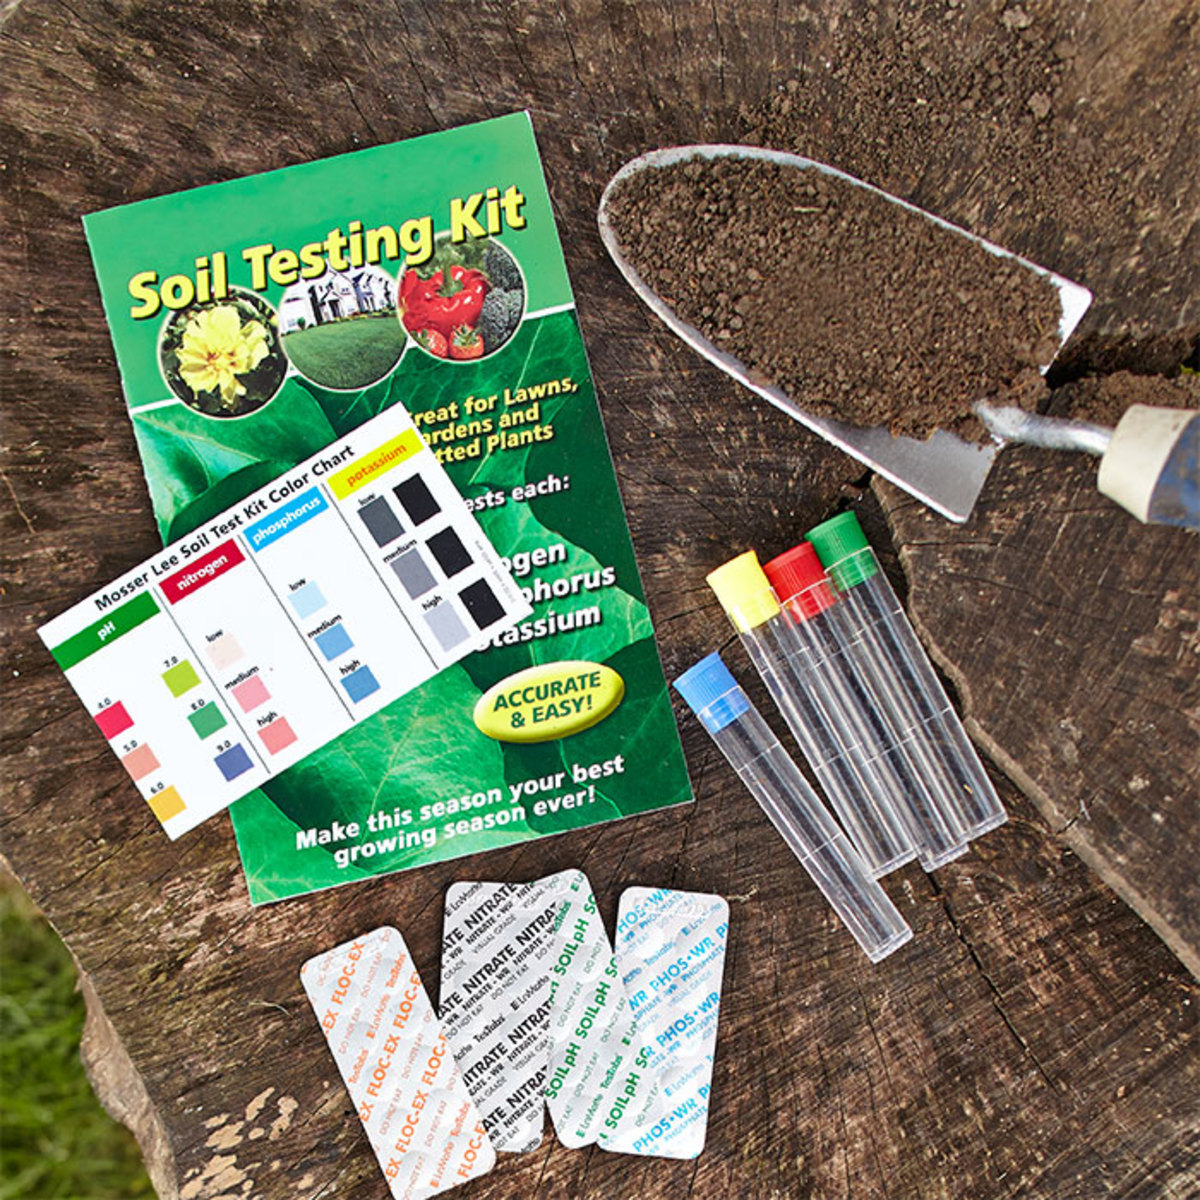 A soil testing kit helps you choose the right kind of fertilizer and keep unnecessary chemicals from draining into groundwaters.